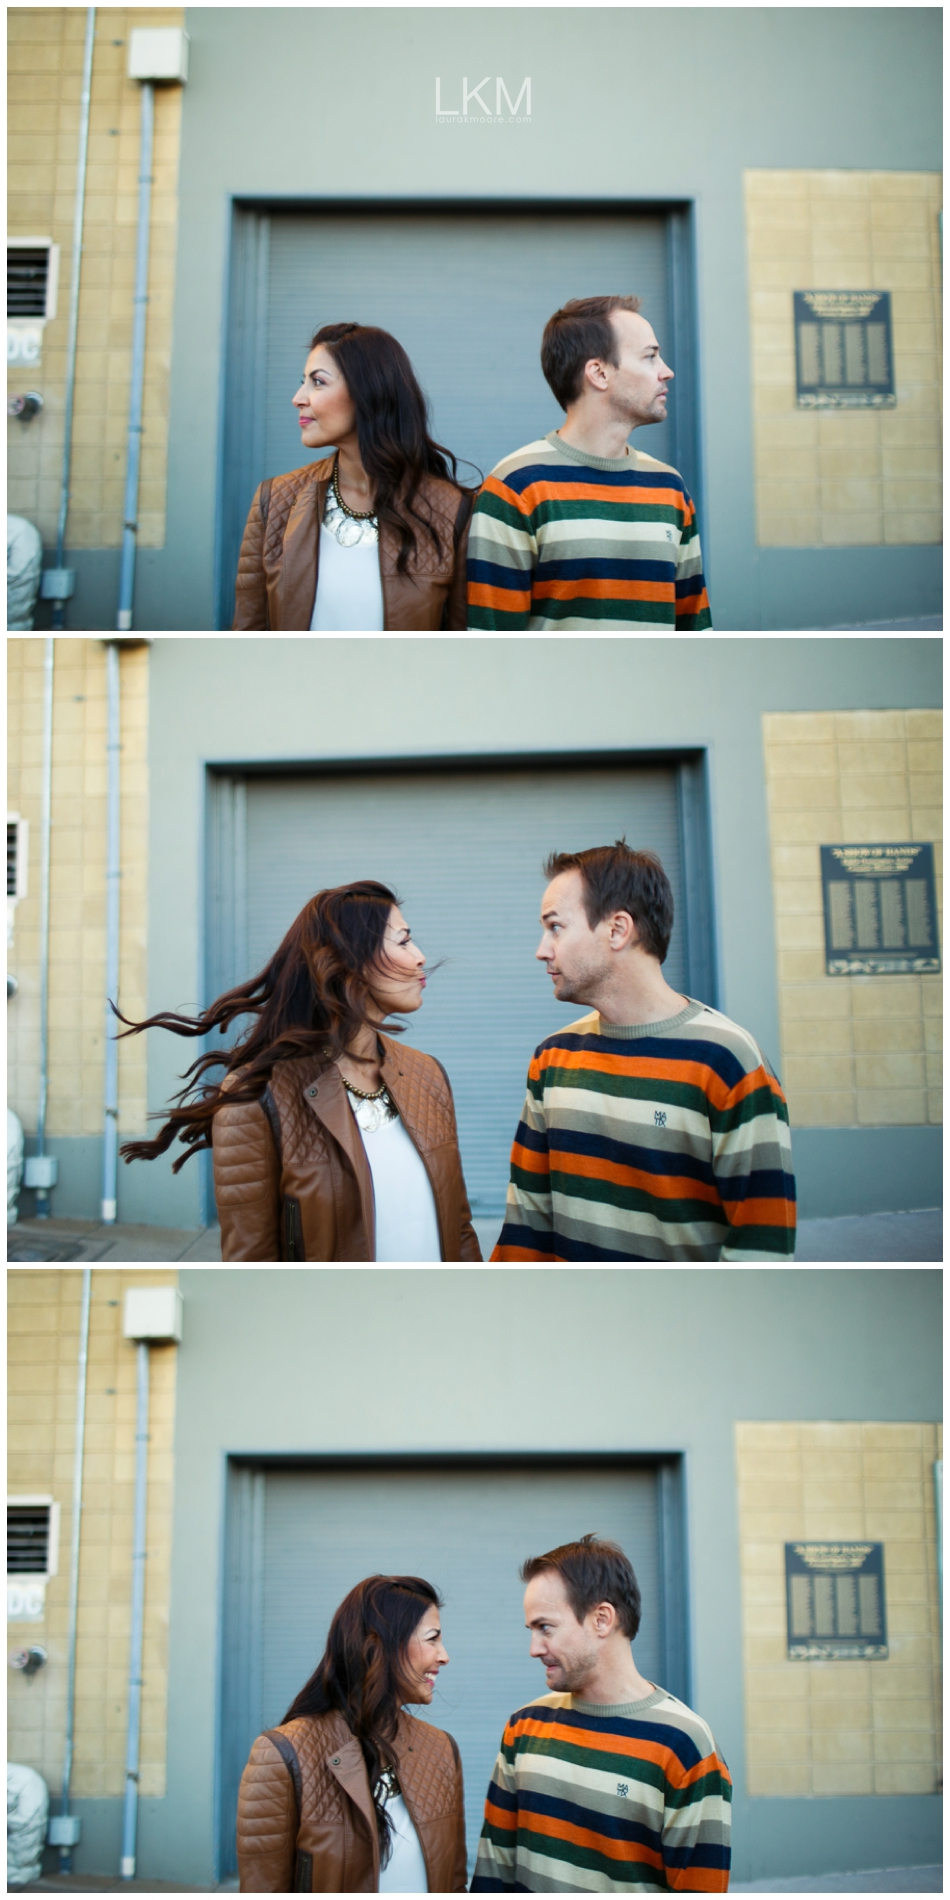 st-philipps-tucson-classy-engagement-session-laura-k-moore-photography_0032.jpg